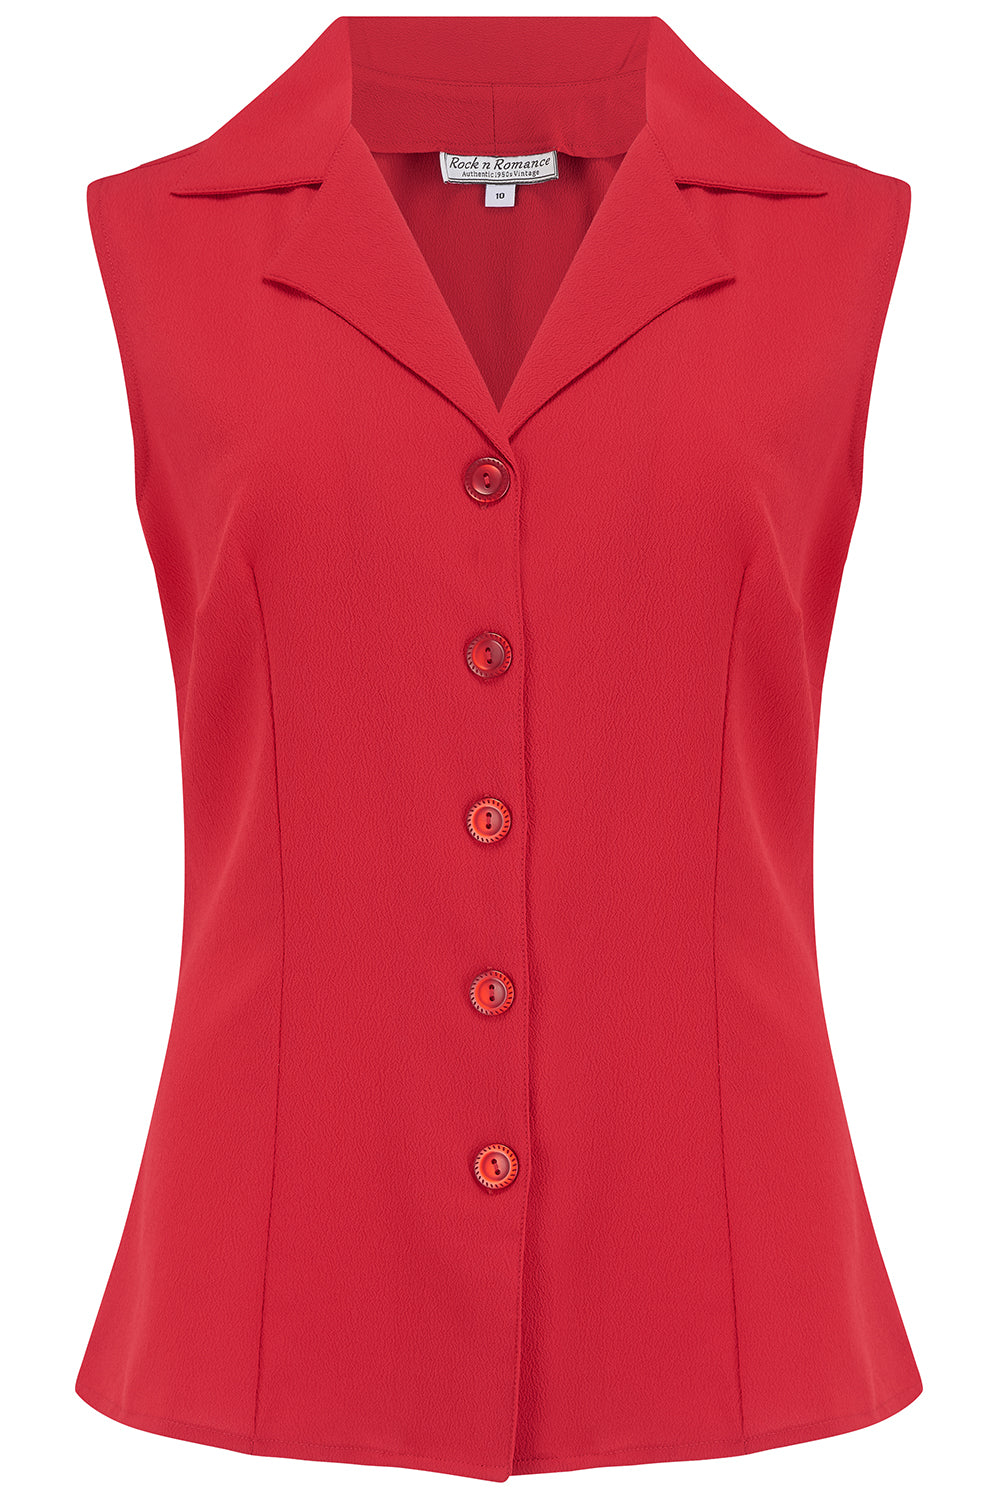 "Rock n Romance The ""Gladys"" Sleeveless Summer Blouse in Solid Red, Classic Vintage 1950s Inspired Style - RocknRomance Clothing"